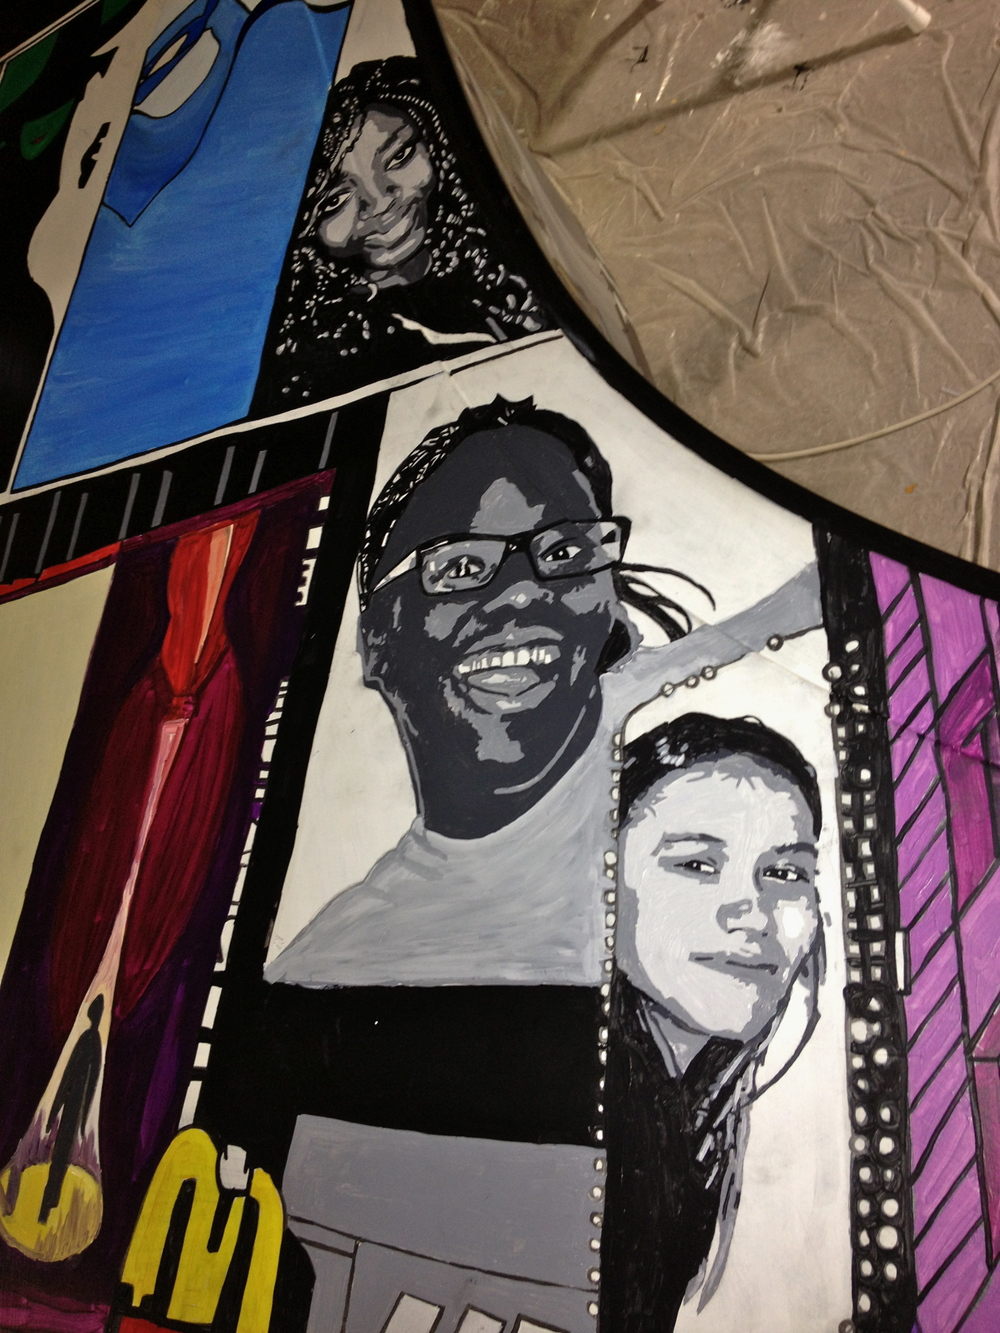 Piano top - Portraits in progress